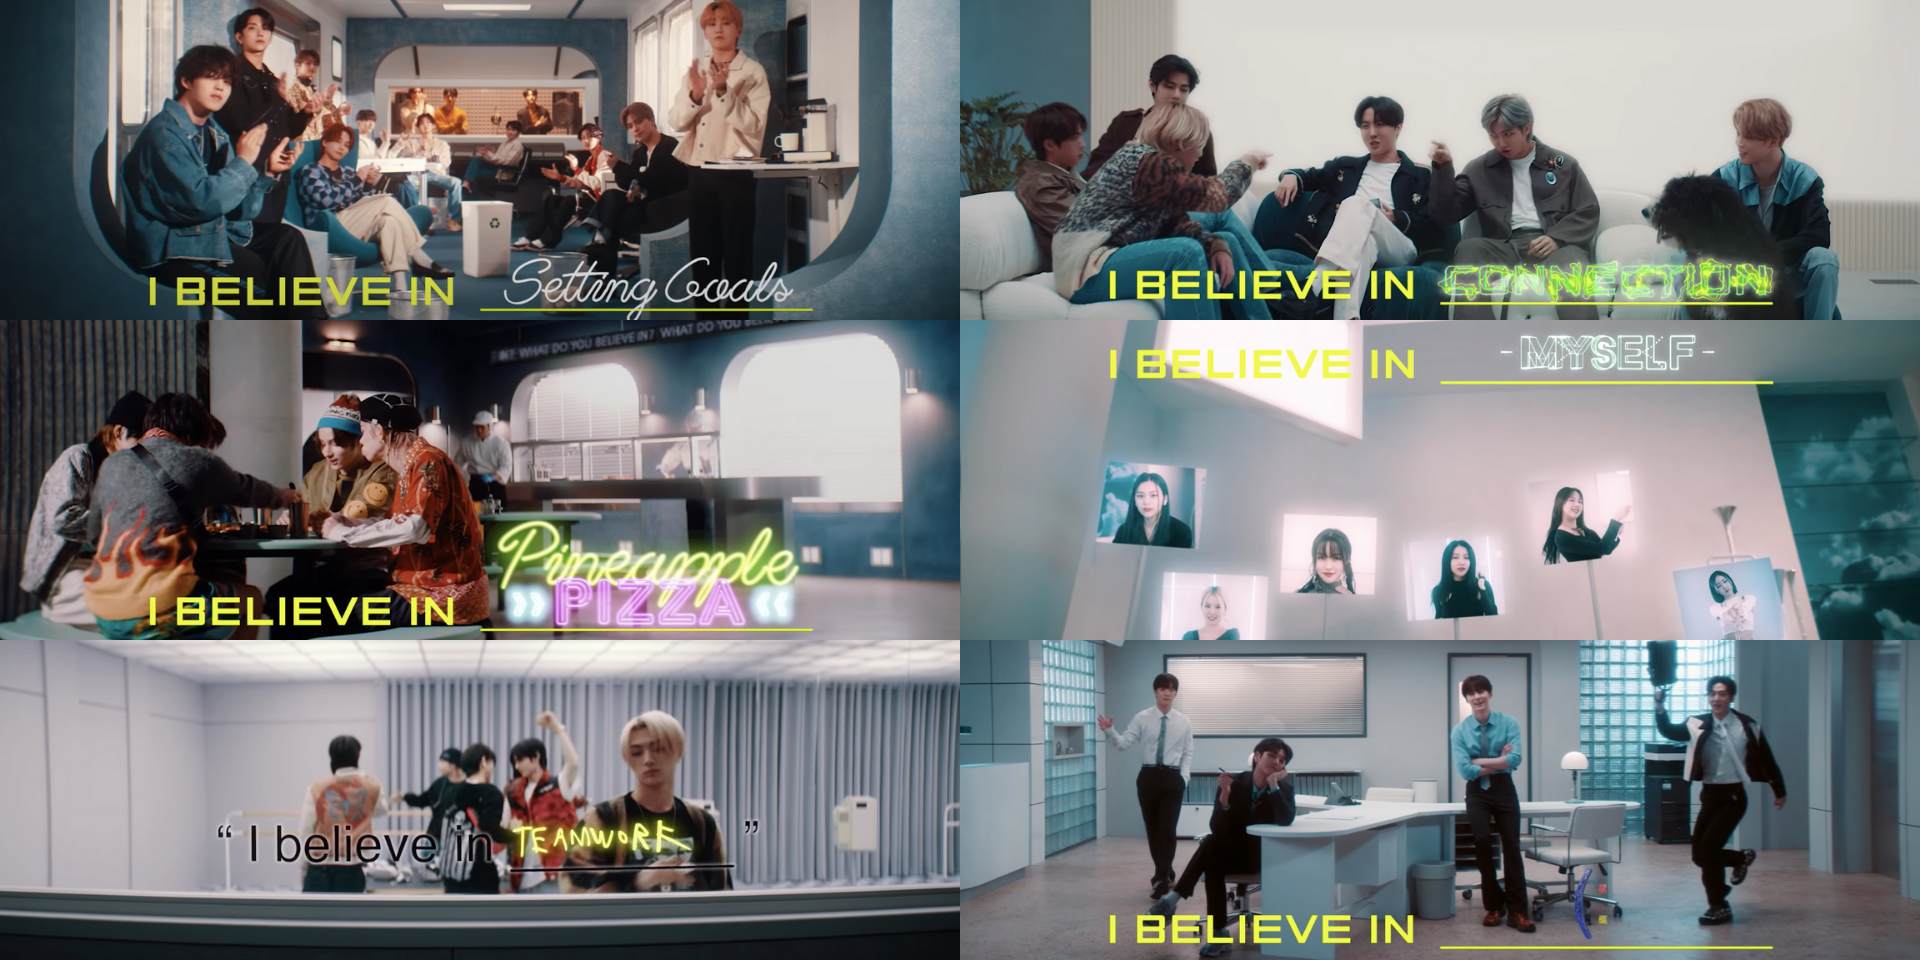 Big Hit Label artists ask 'WHAT DO YOU BELIEVE IN?' in new campaign film starring BTS, SEVENTEEN, GFRIEND, TXT, NU'EST, and ENHYPEN